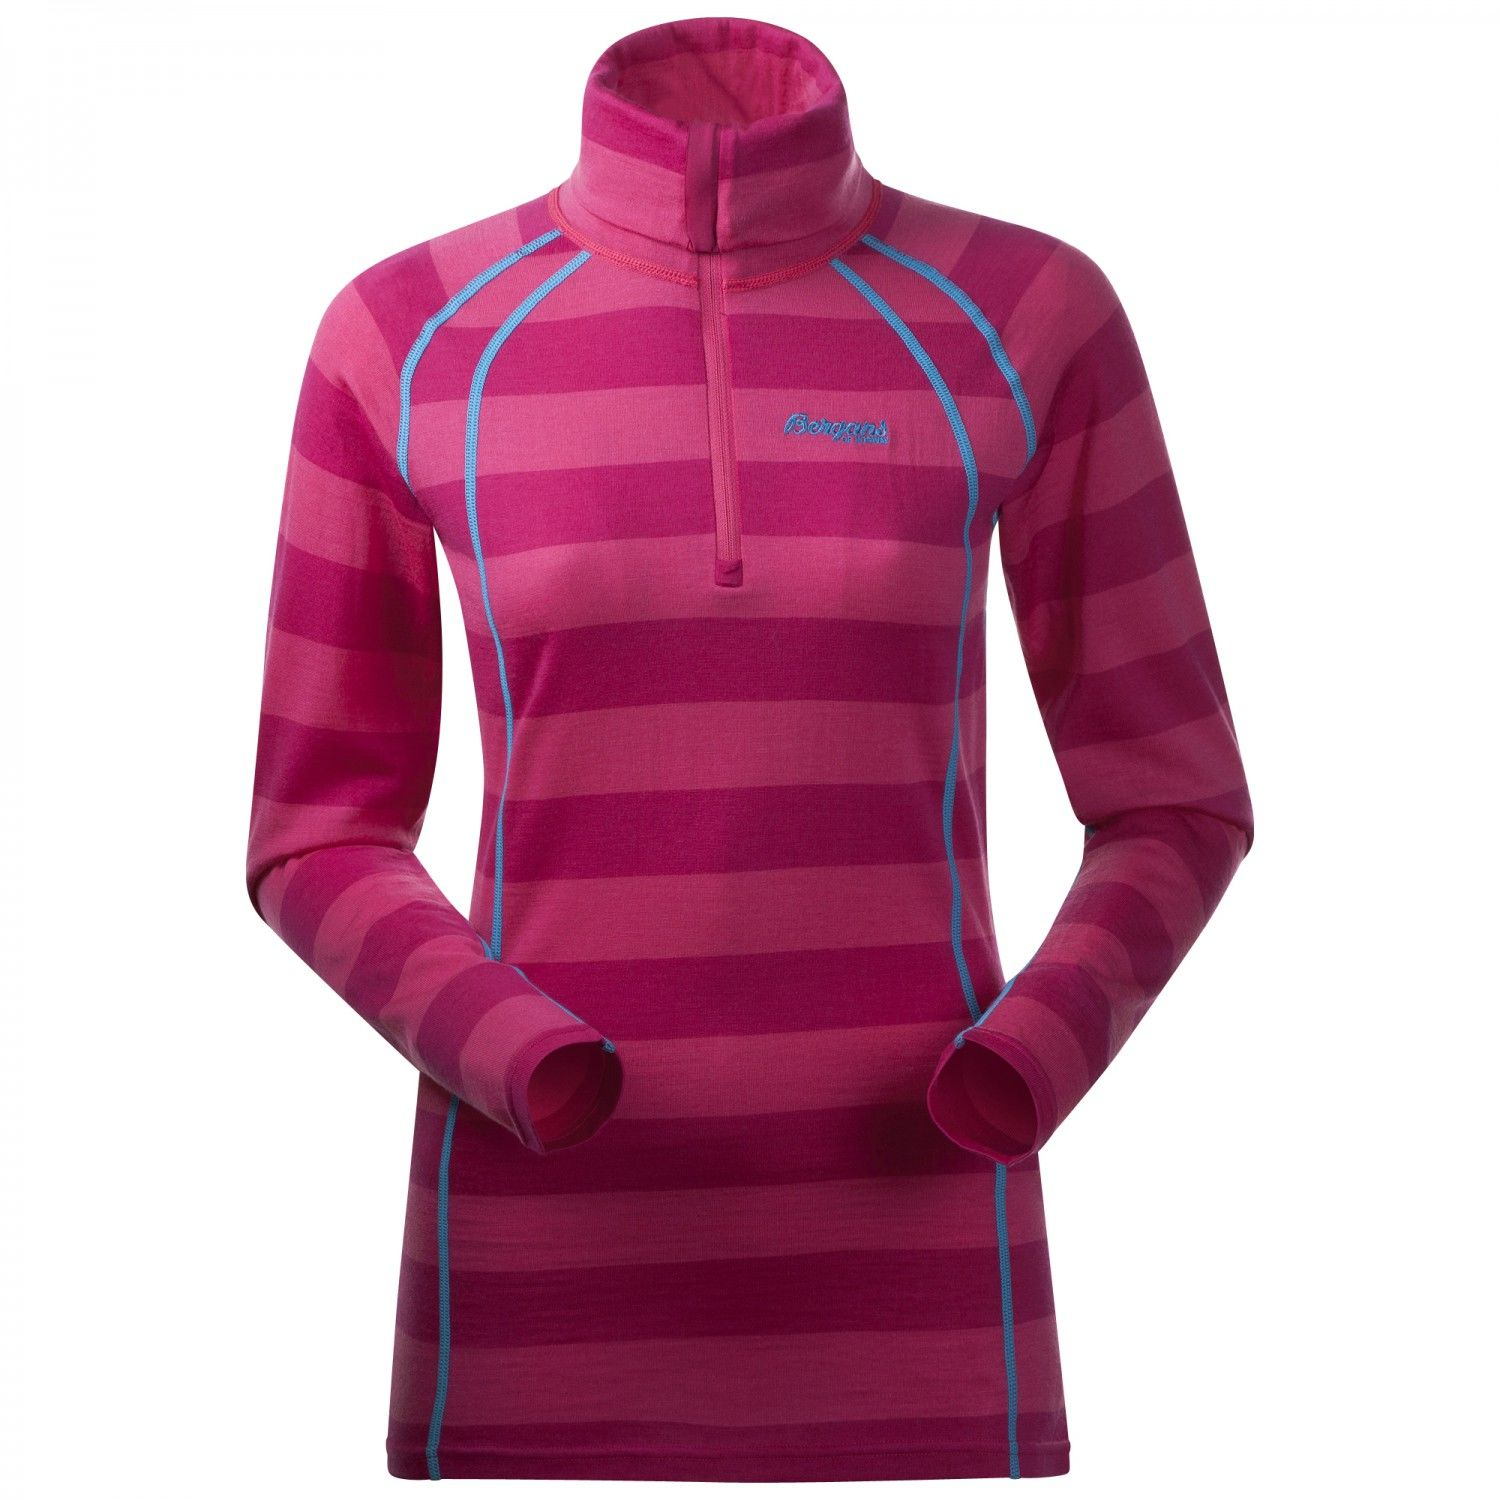 Bergans Fjellrapp Lady Half Zip, Hot Pink Striped | Damen Langarm-Shirt